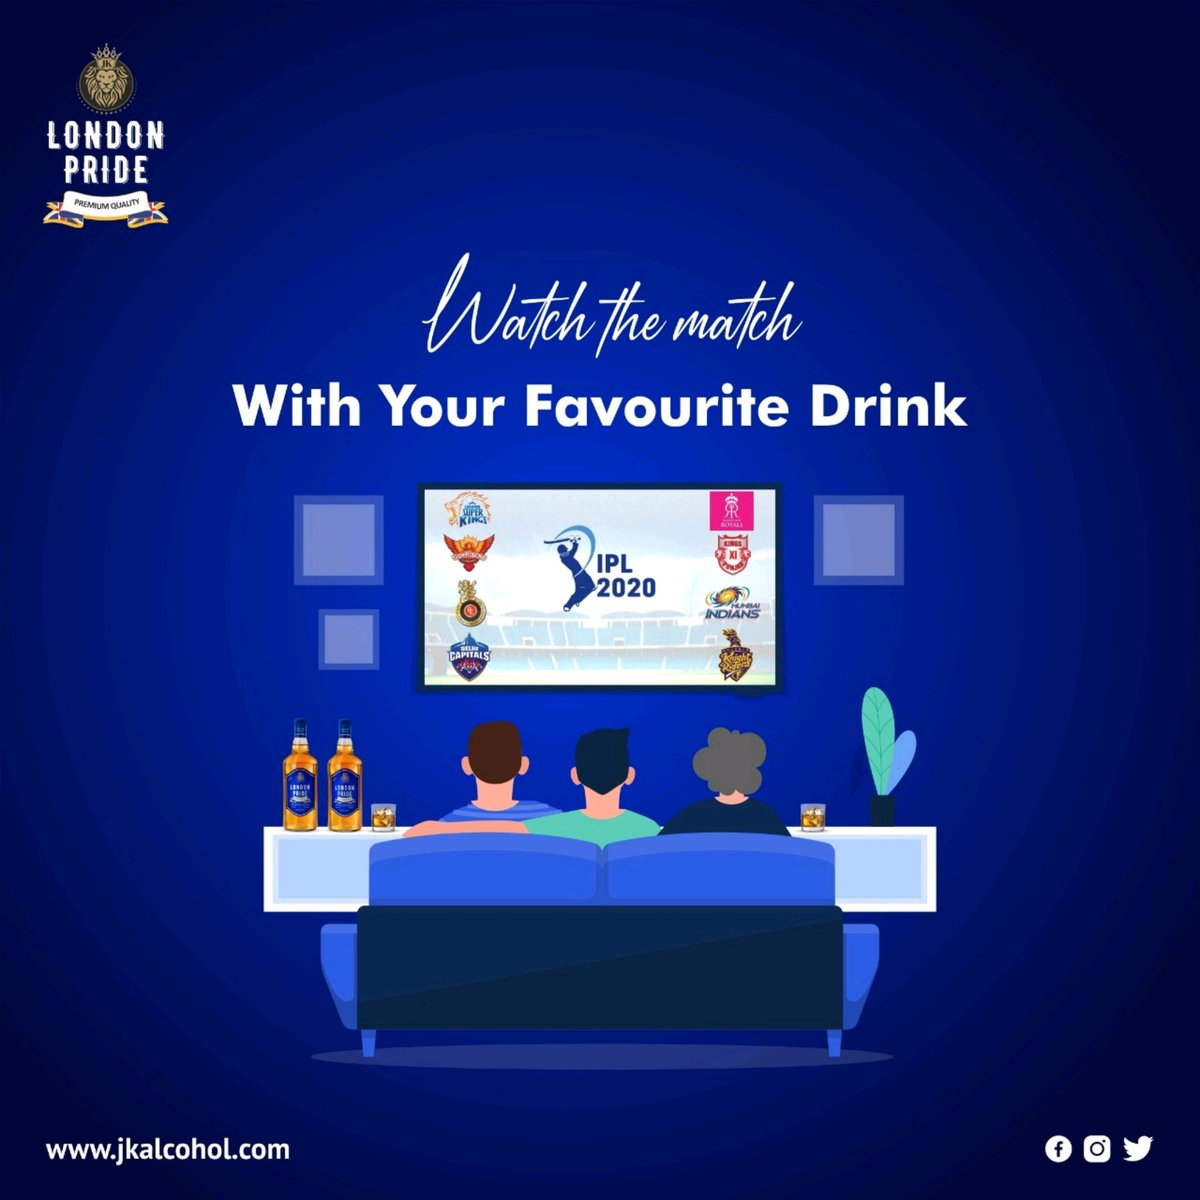 Take a seat with a glass of whisky as you watch the IPL 2020 and cheer for your favourite team! . #jkalcohol #Jkgroup #JkEnterprises #londonpride #Londonreserve #whisky #vodka #rum #premiumwhisky #indore #gwalior #Bhopal #jabalpur #madhyapradesh #drinks #harddrinks #drinking https://t.co/jqtDDMhNiM